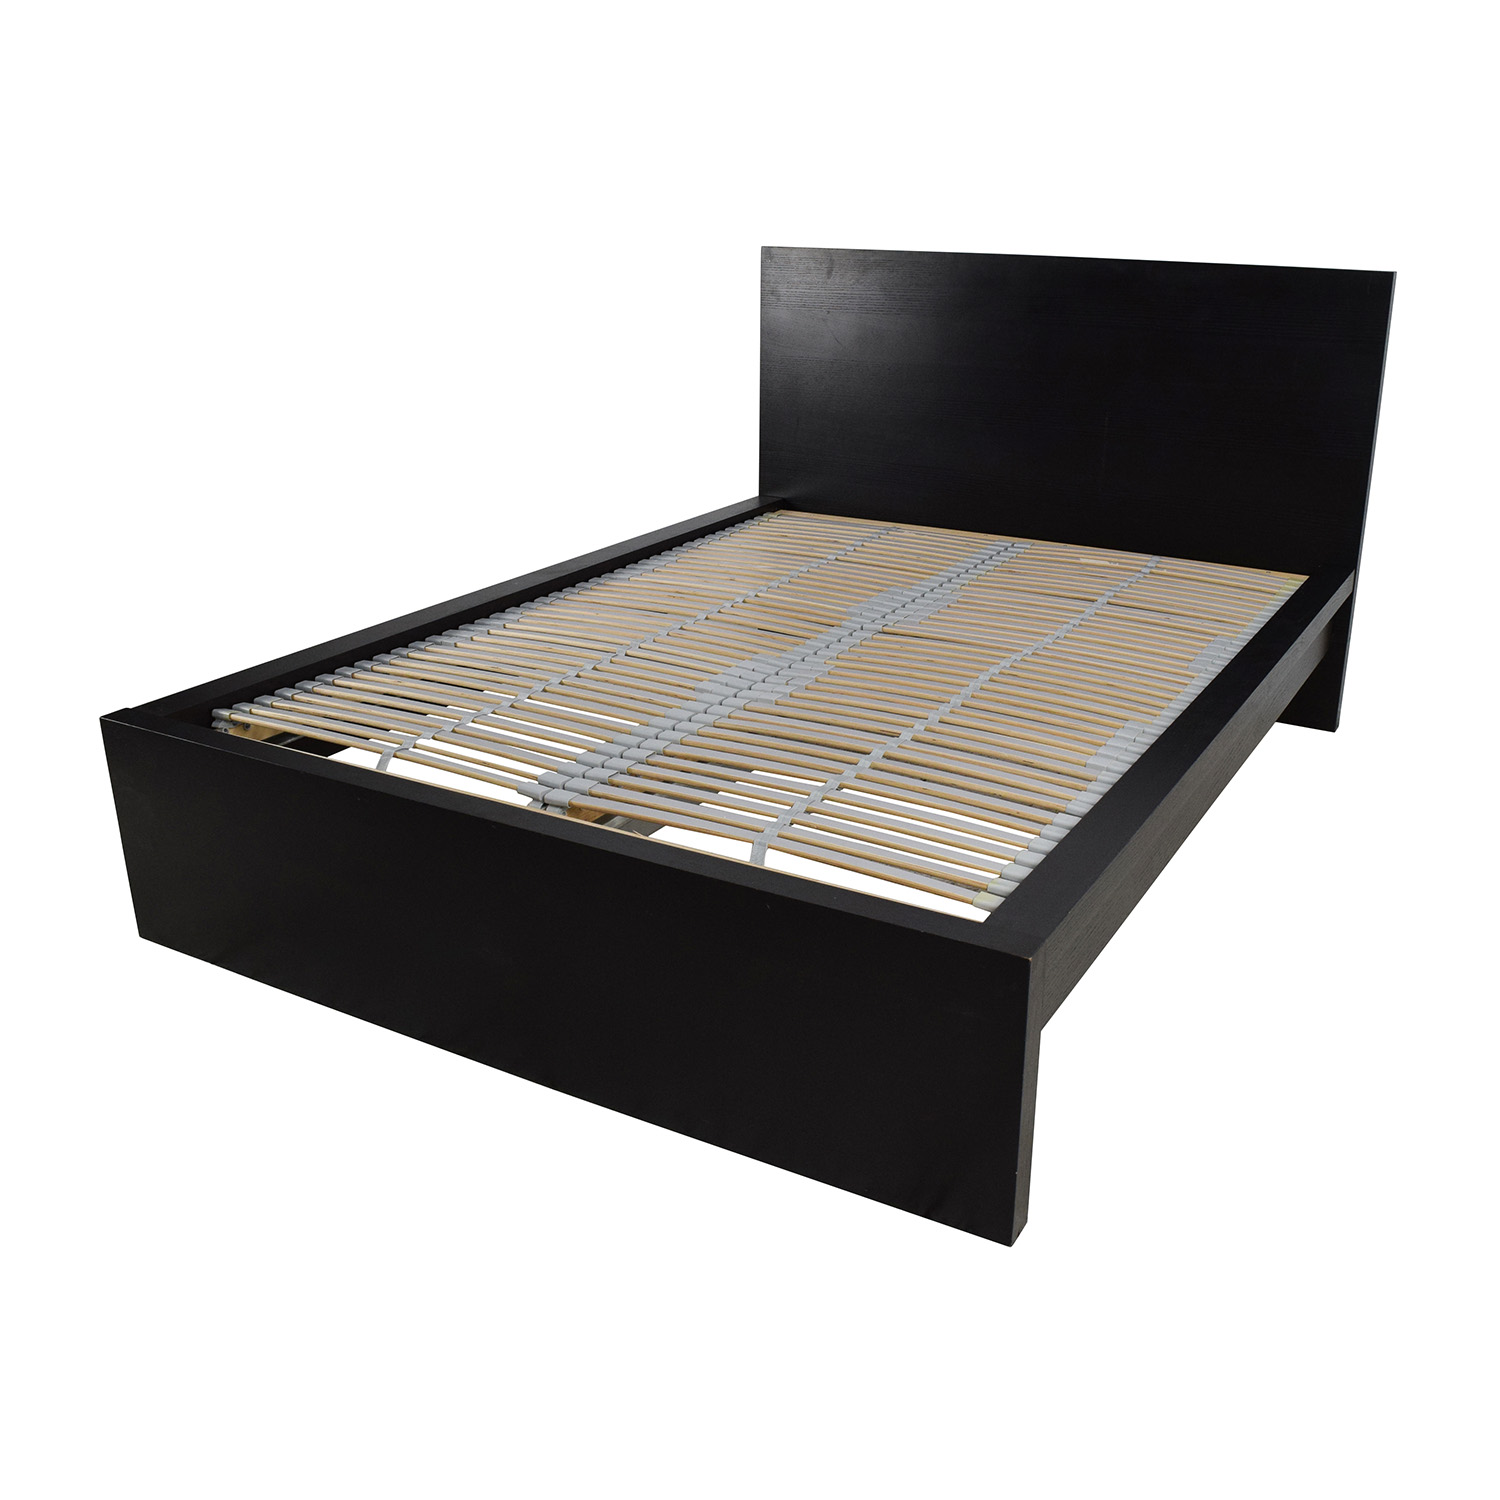 77 off ikea ikea full bed frame with adjustable slats beds. Black Bedroom Furniture Sets. Home Design Ideas